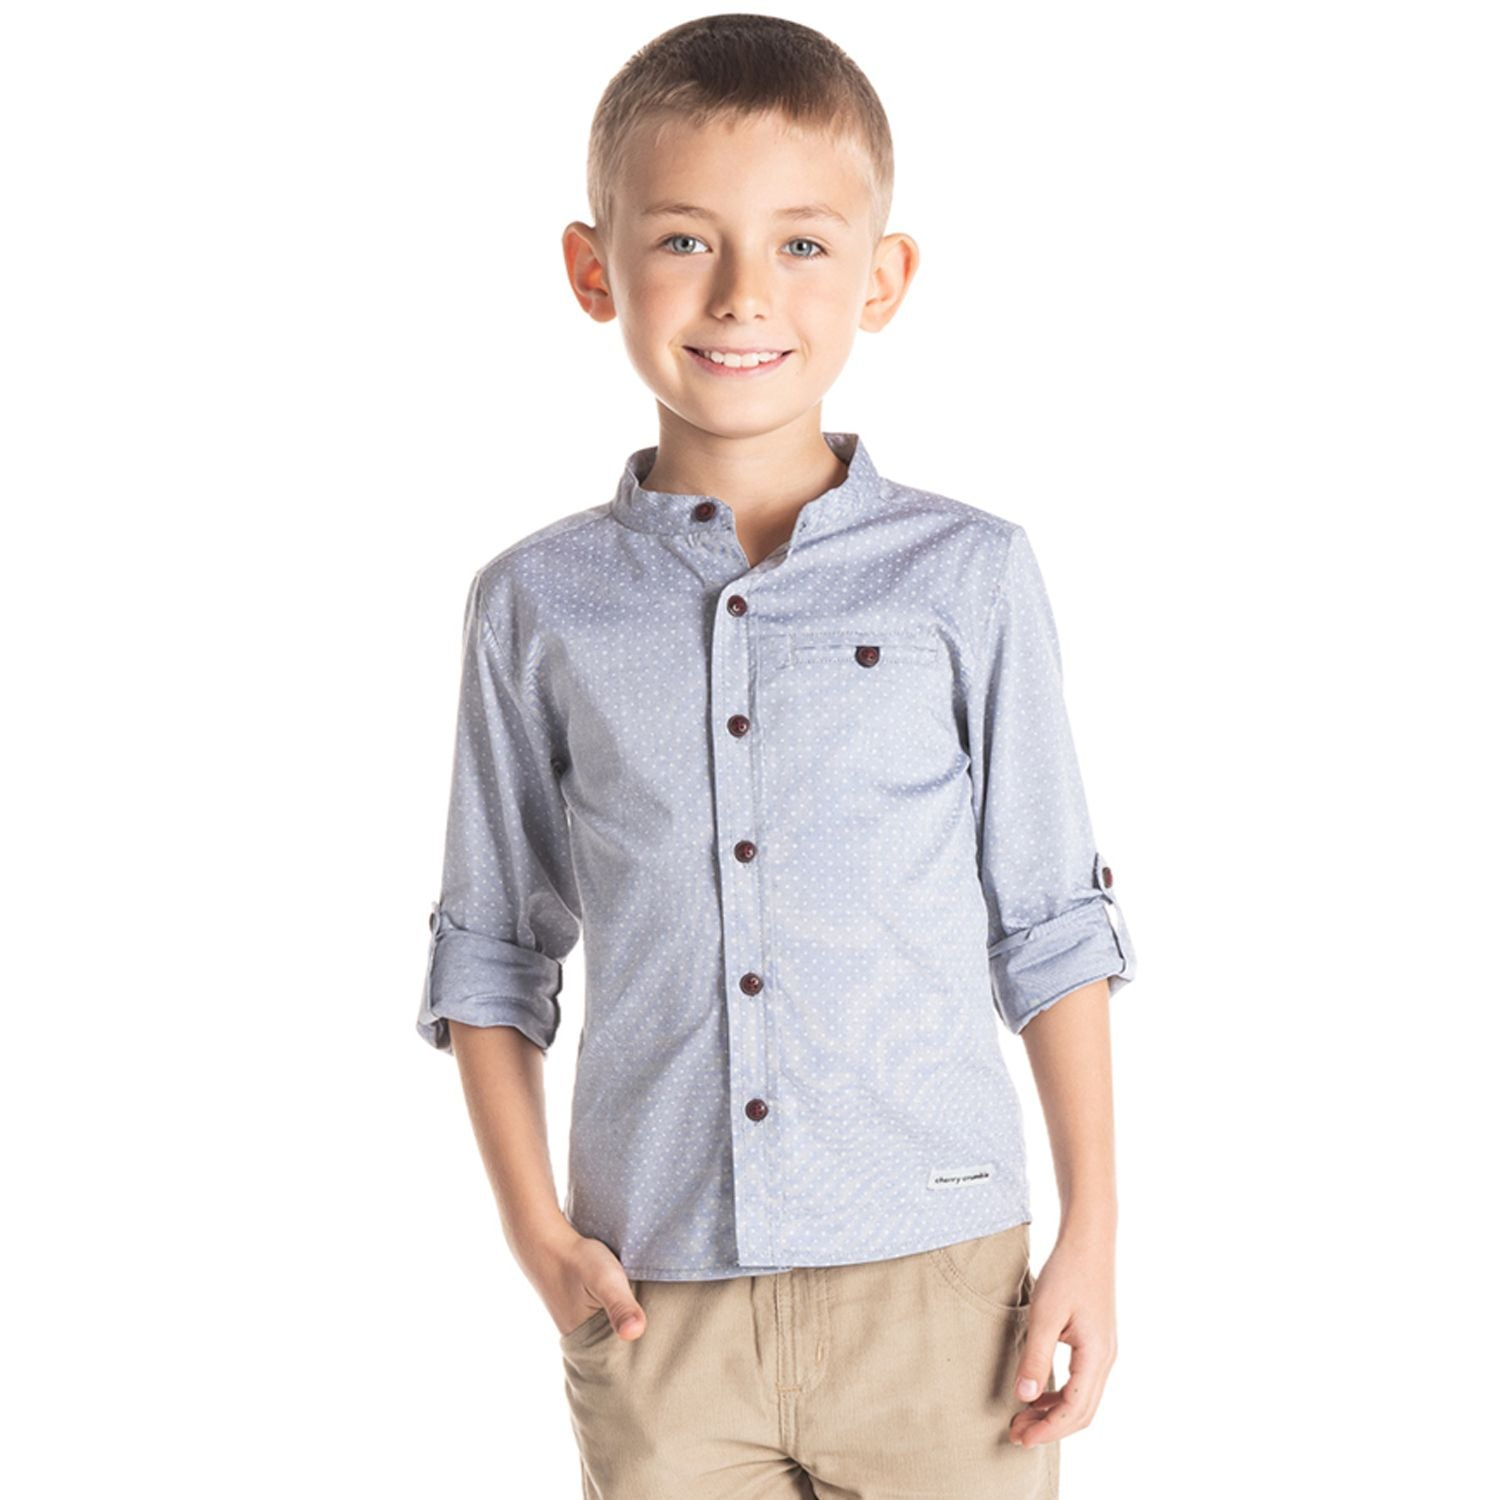 Mandarin Collar Shirt for Boys